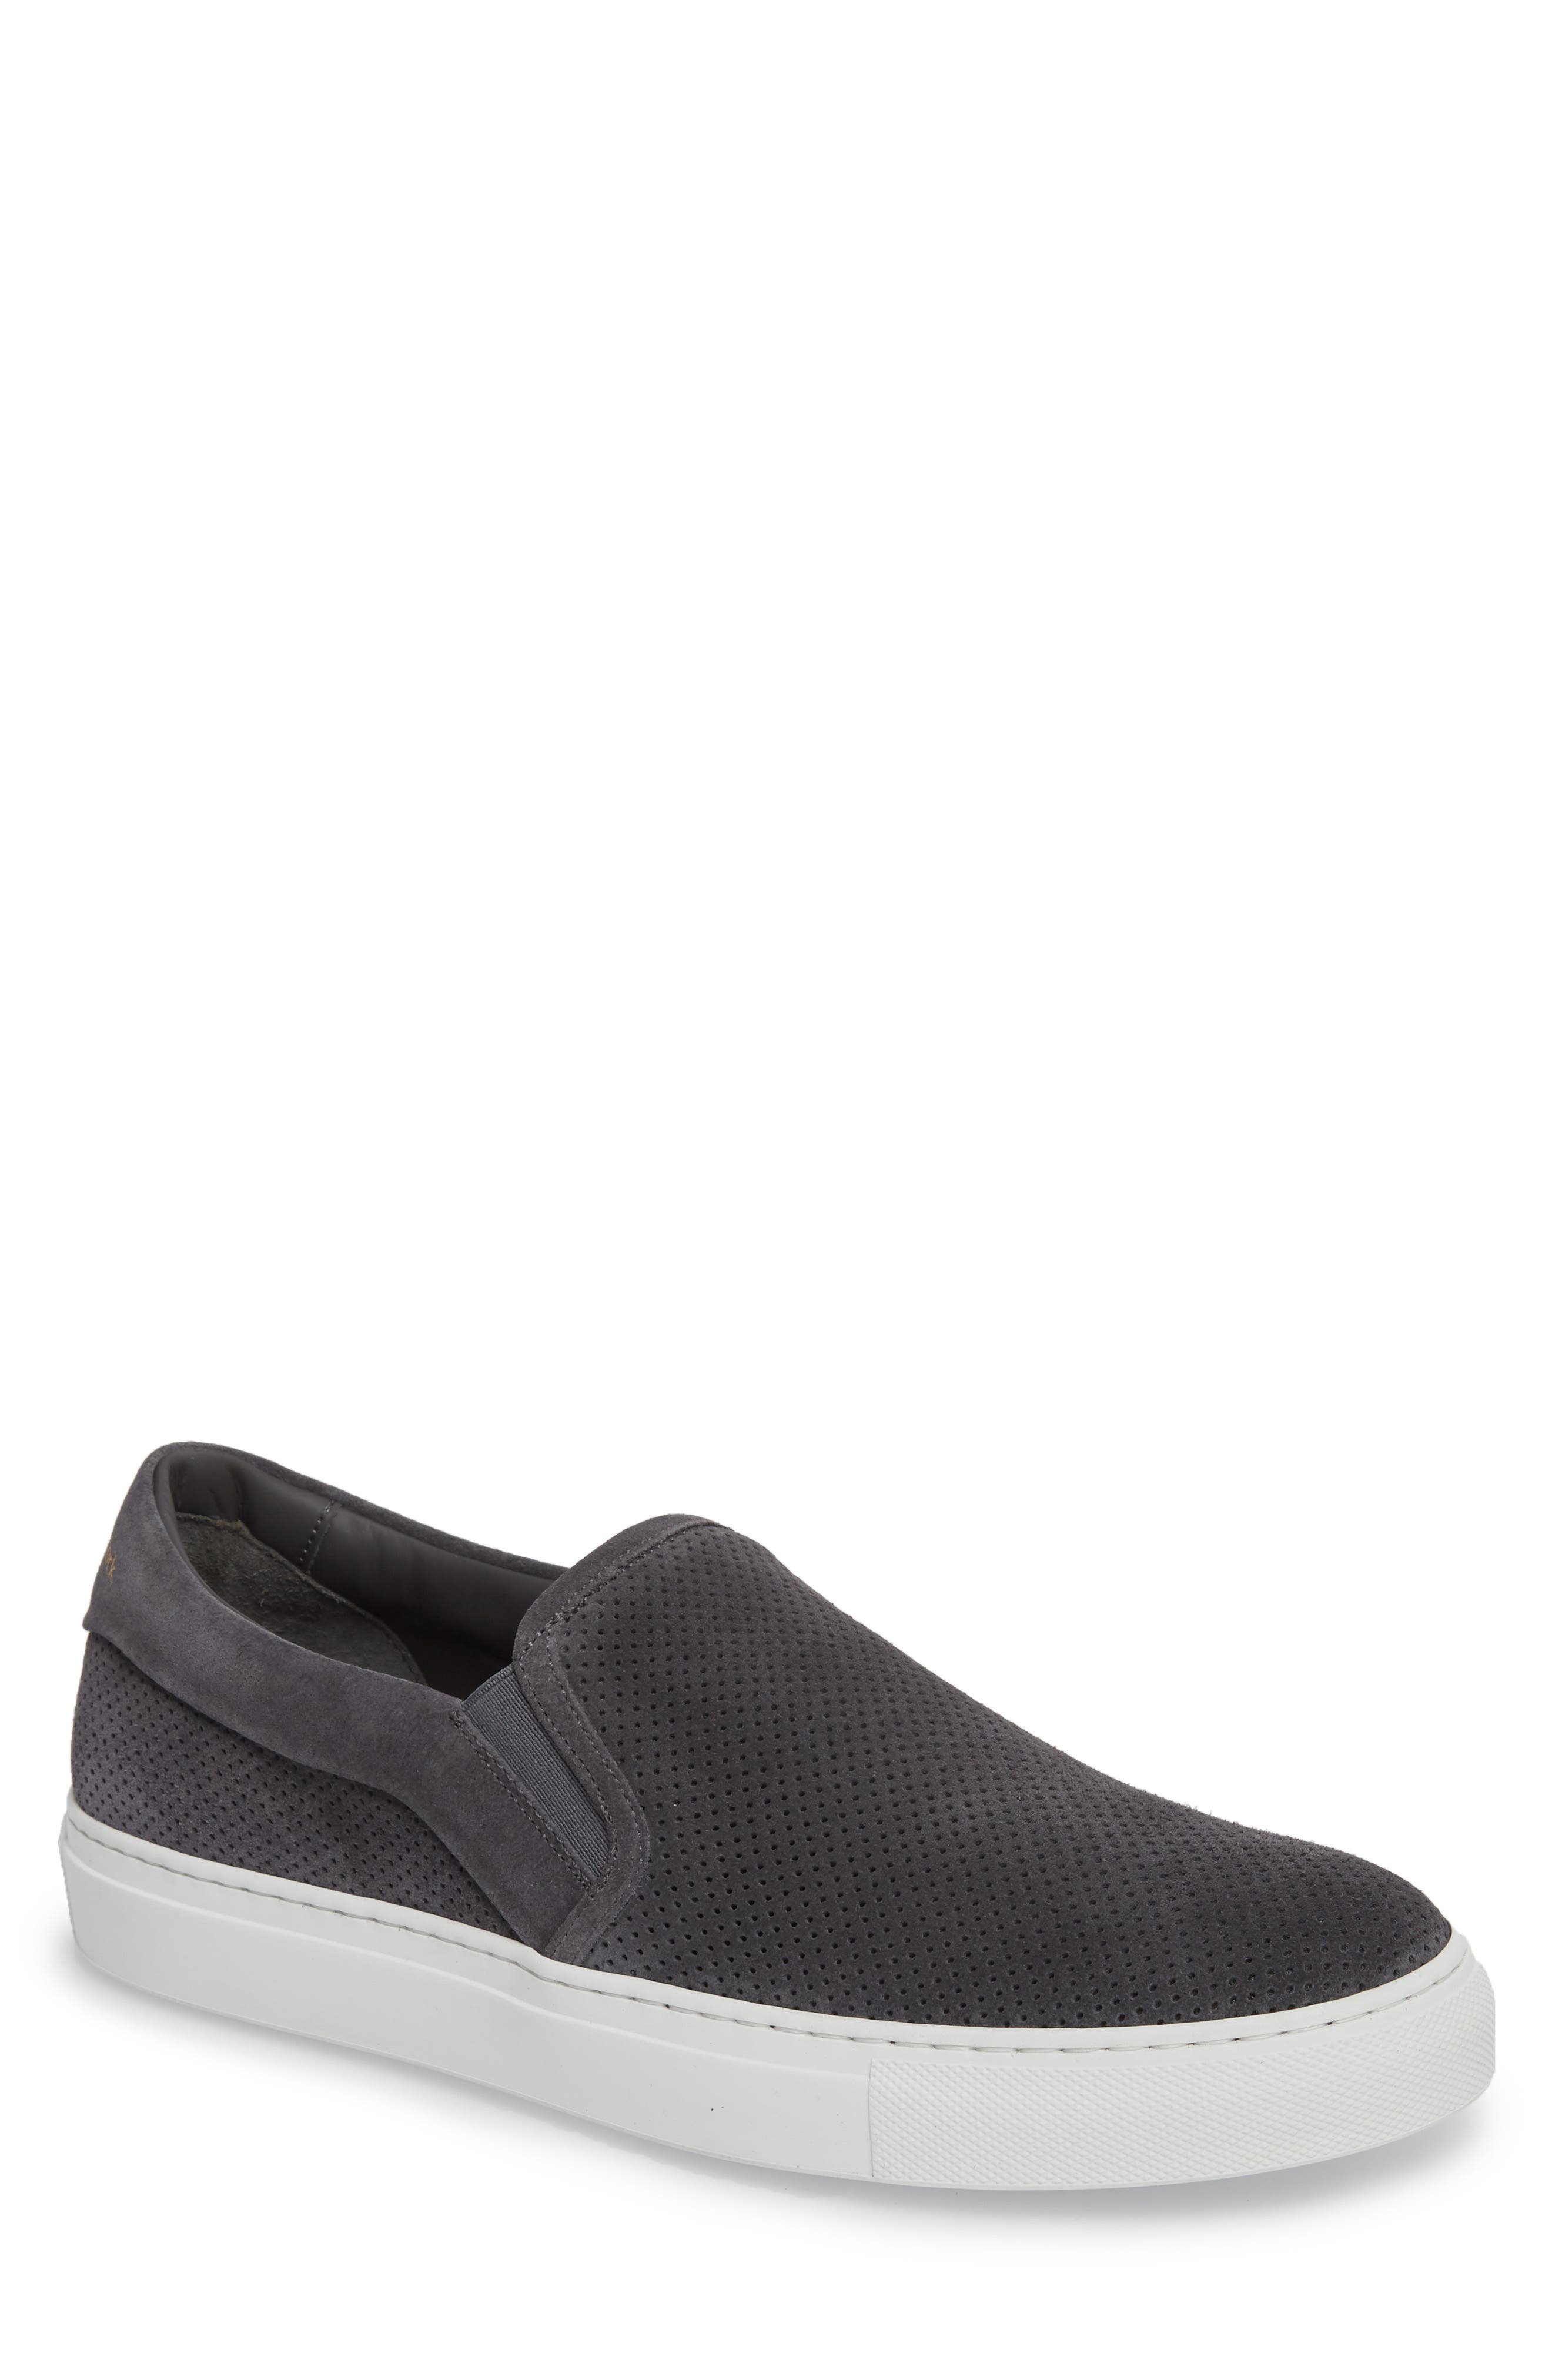 Buelton Perforated Slip-On Sneaker,                             Main thumbnail 1, color,                             Avion/ Tan Suede